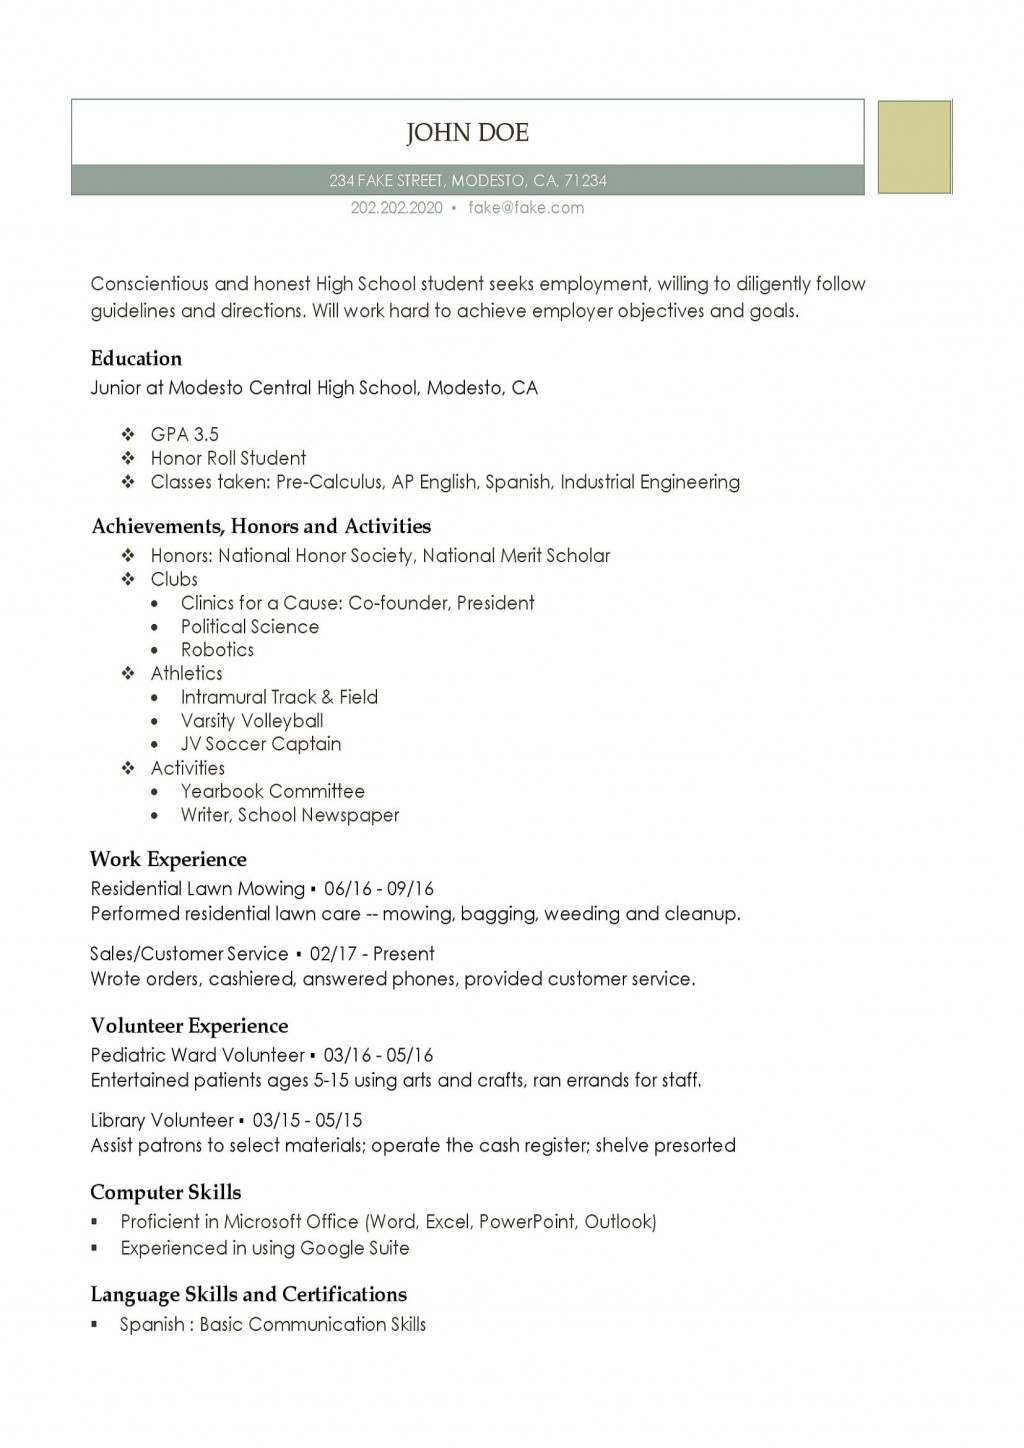 004 Staggering Resume Template High School Student Example  Students Easy For Curriculum Vitae Format Pdf Free DownloadableLarge